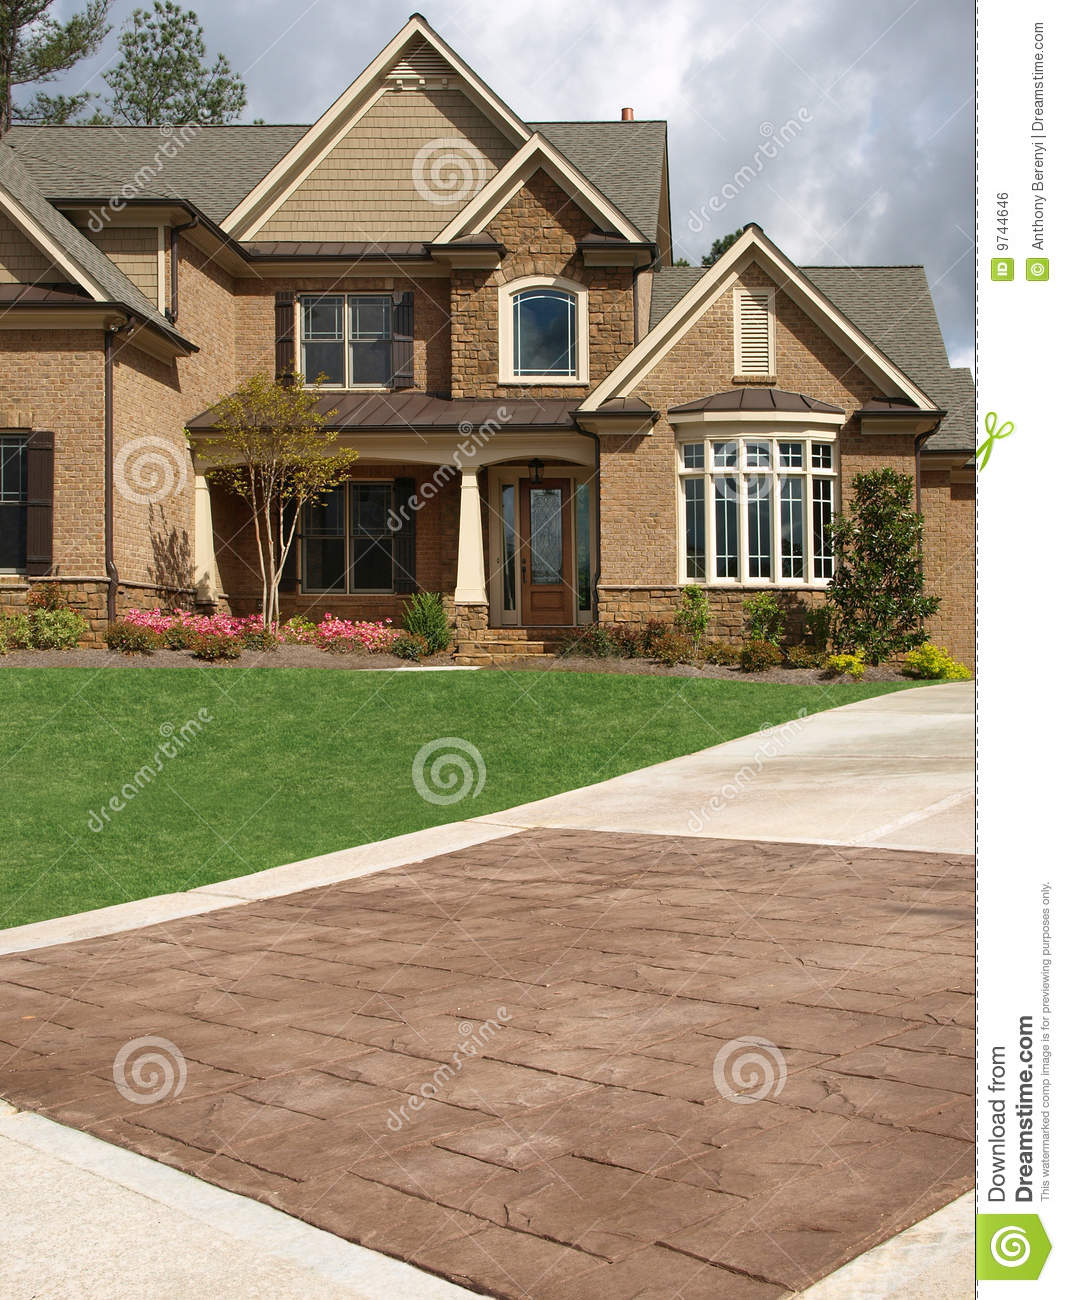 Luxury Marble Exterior House Exterior Designs: Luxury Model Home Exterior Stone Driveway Stock Photo